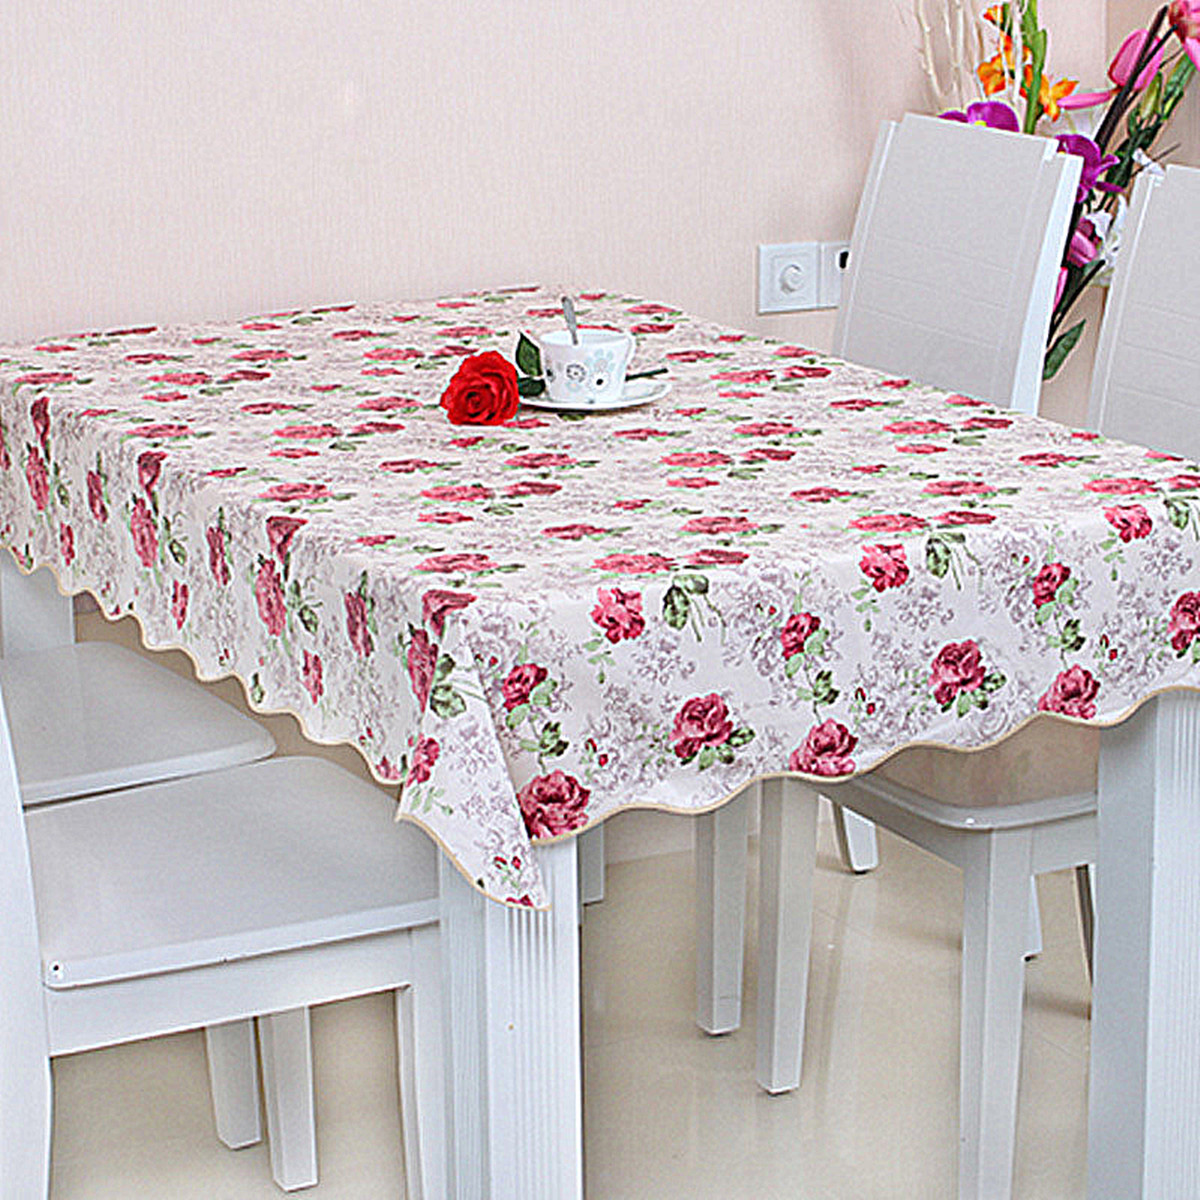 Wipe Clean Pvc Tablecloth Waterproof Grease Kitchen Table